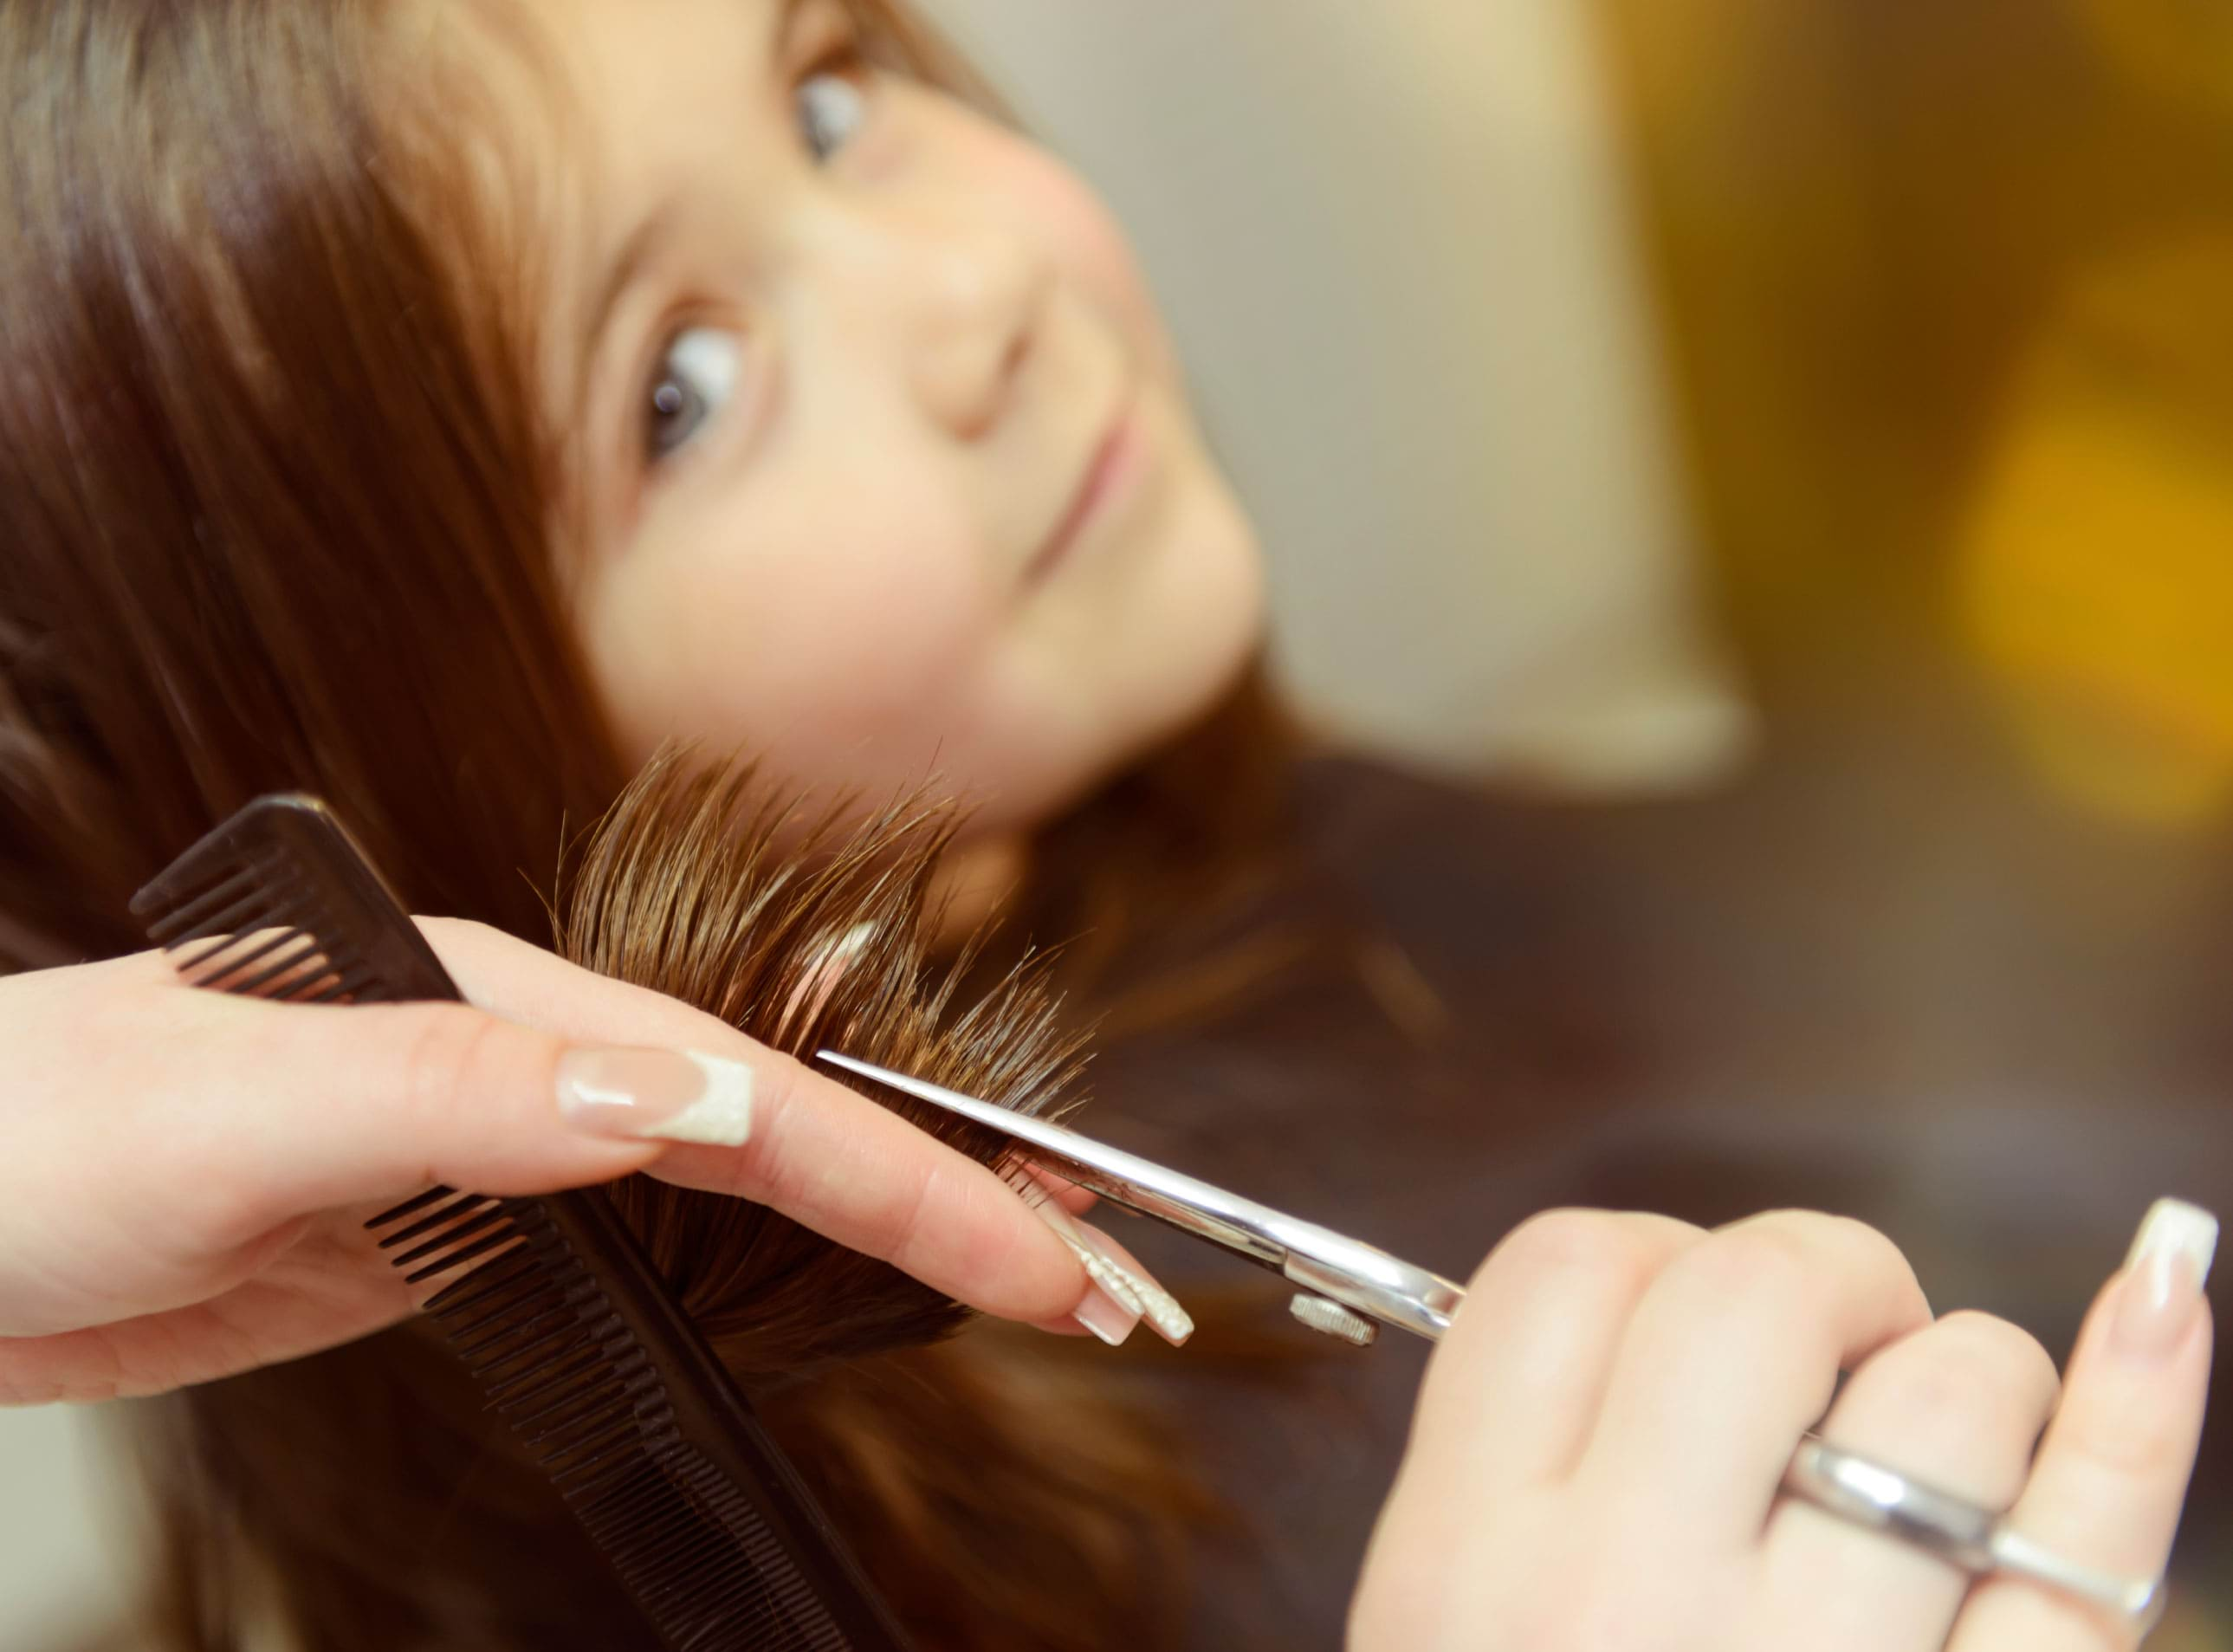 12-13-things-your-hairstylist-wont-tell-you-girls-haircut